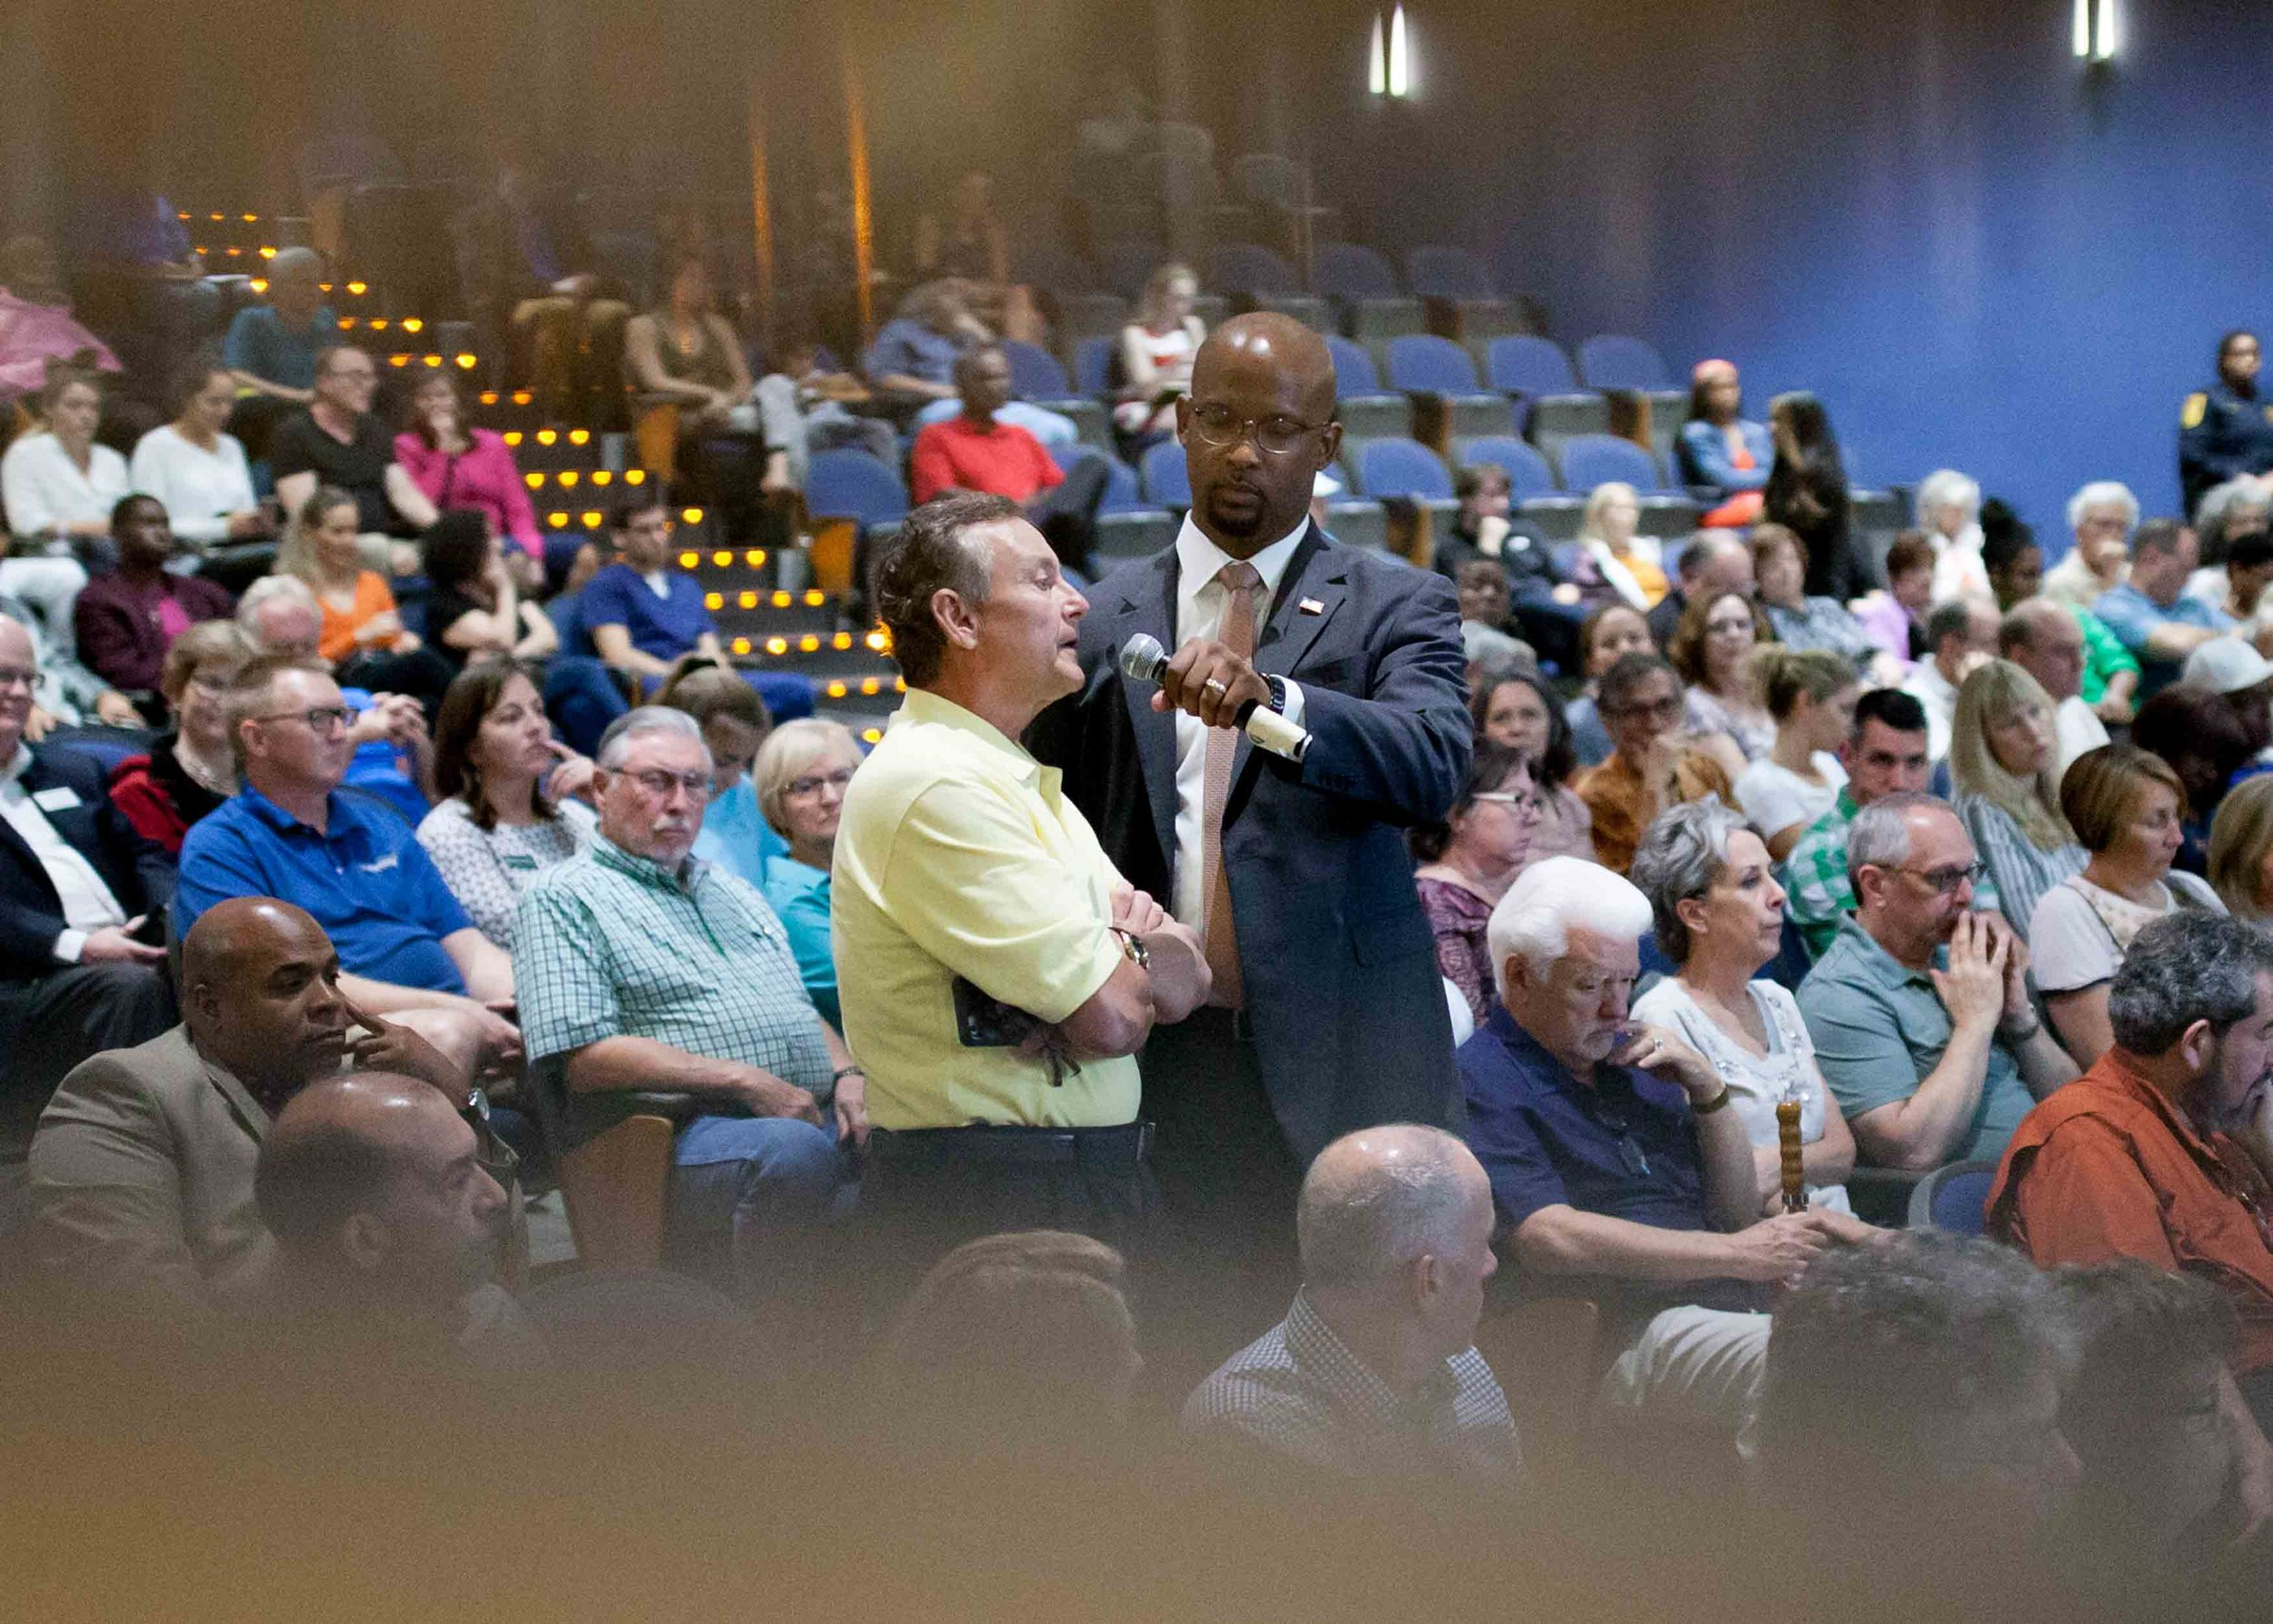 A man asks Rep. Lucy McBath, D-Ga., a question during a town hall at Dunwoody High School on Saturday, June 8, 2019 in Dunwoody, Ga. Branden Camp for AJC